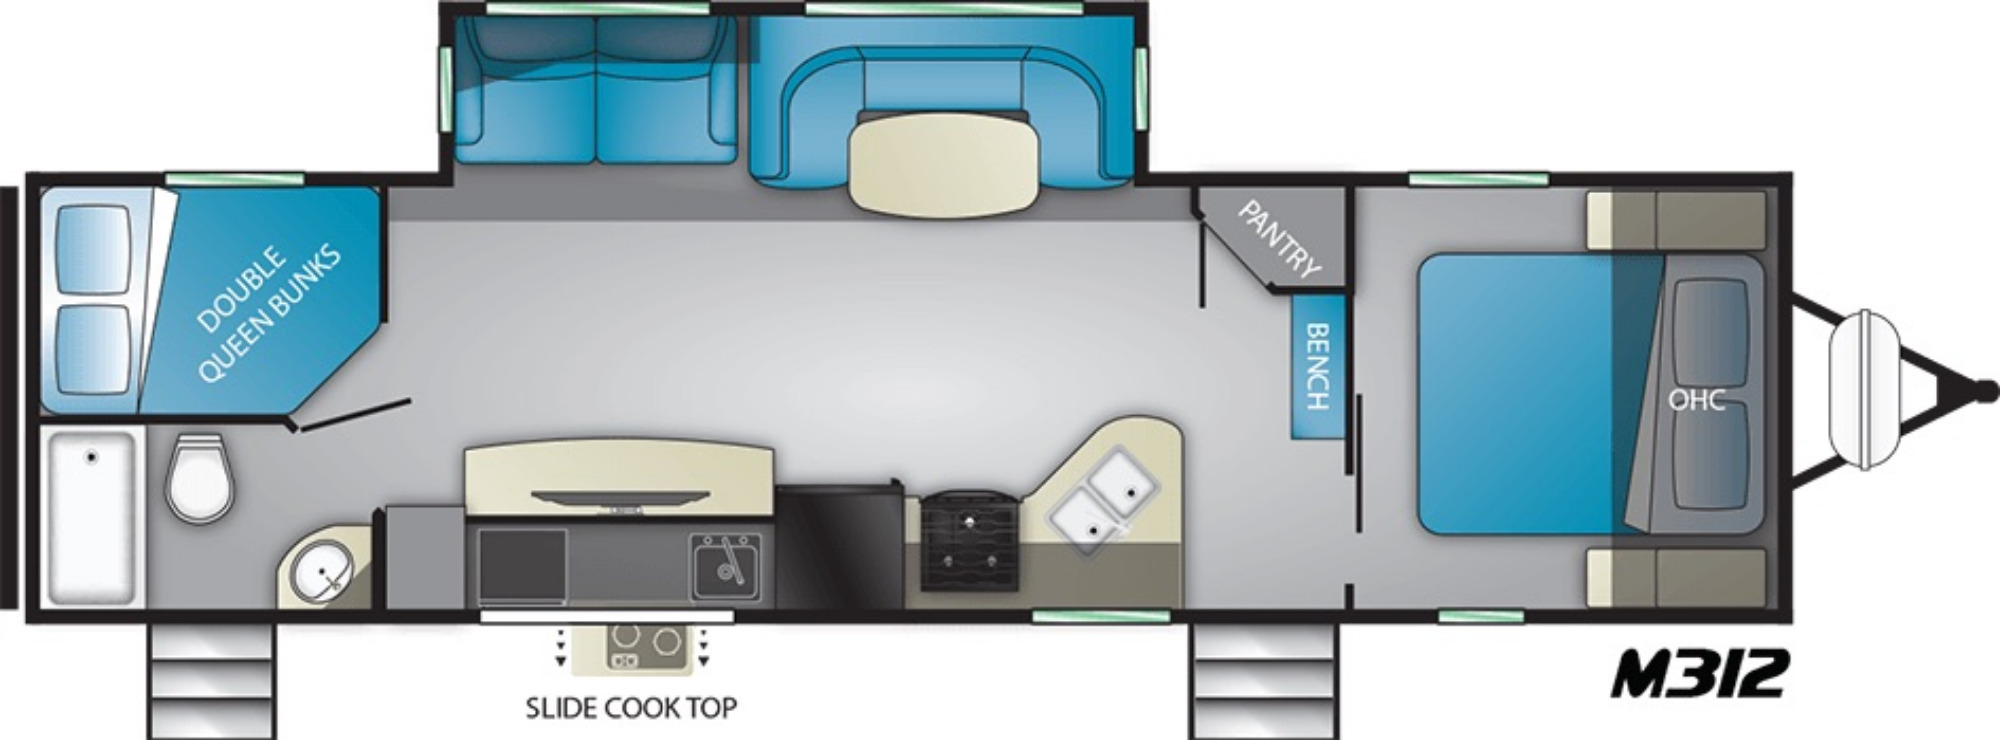 View Floor Plan for 2021 HEARTLAND MALLARD M312